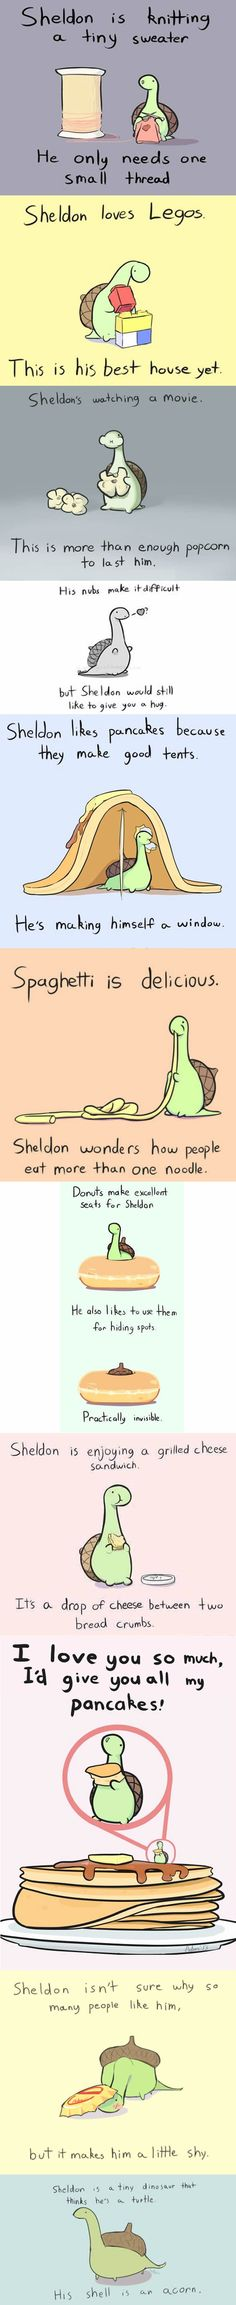 Sheldon is a tiny dinosour that thinks he is a turtle - 9GAG